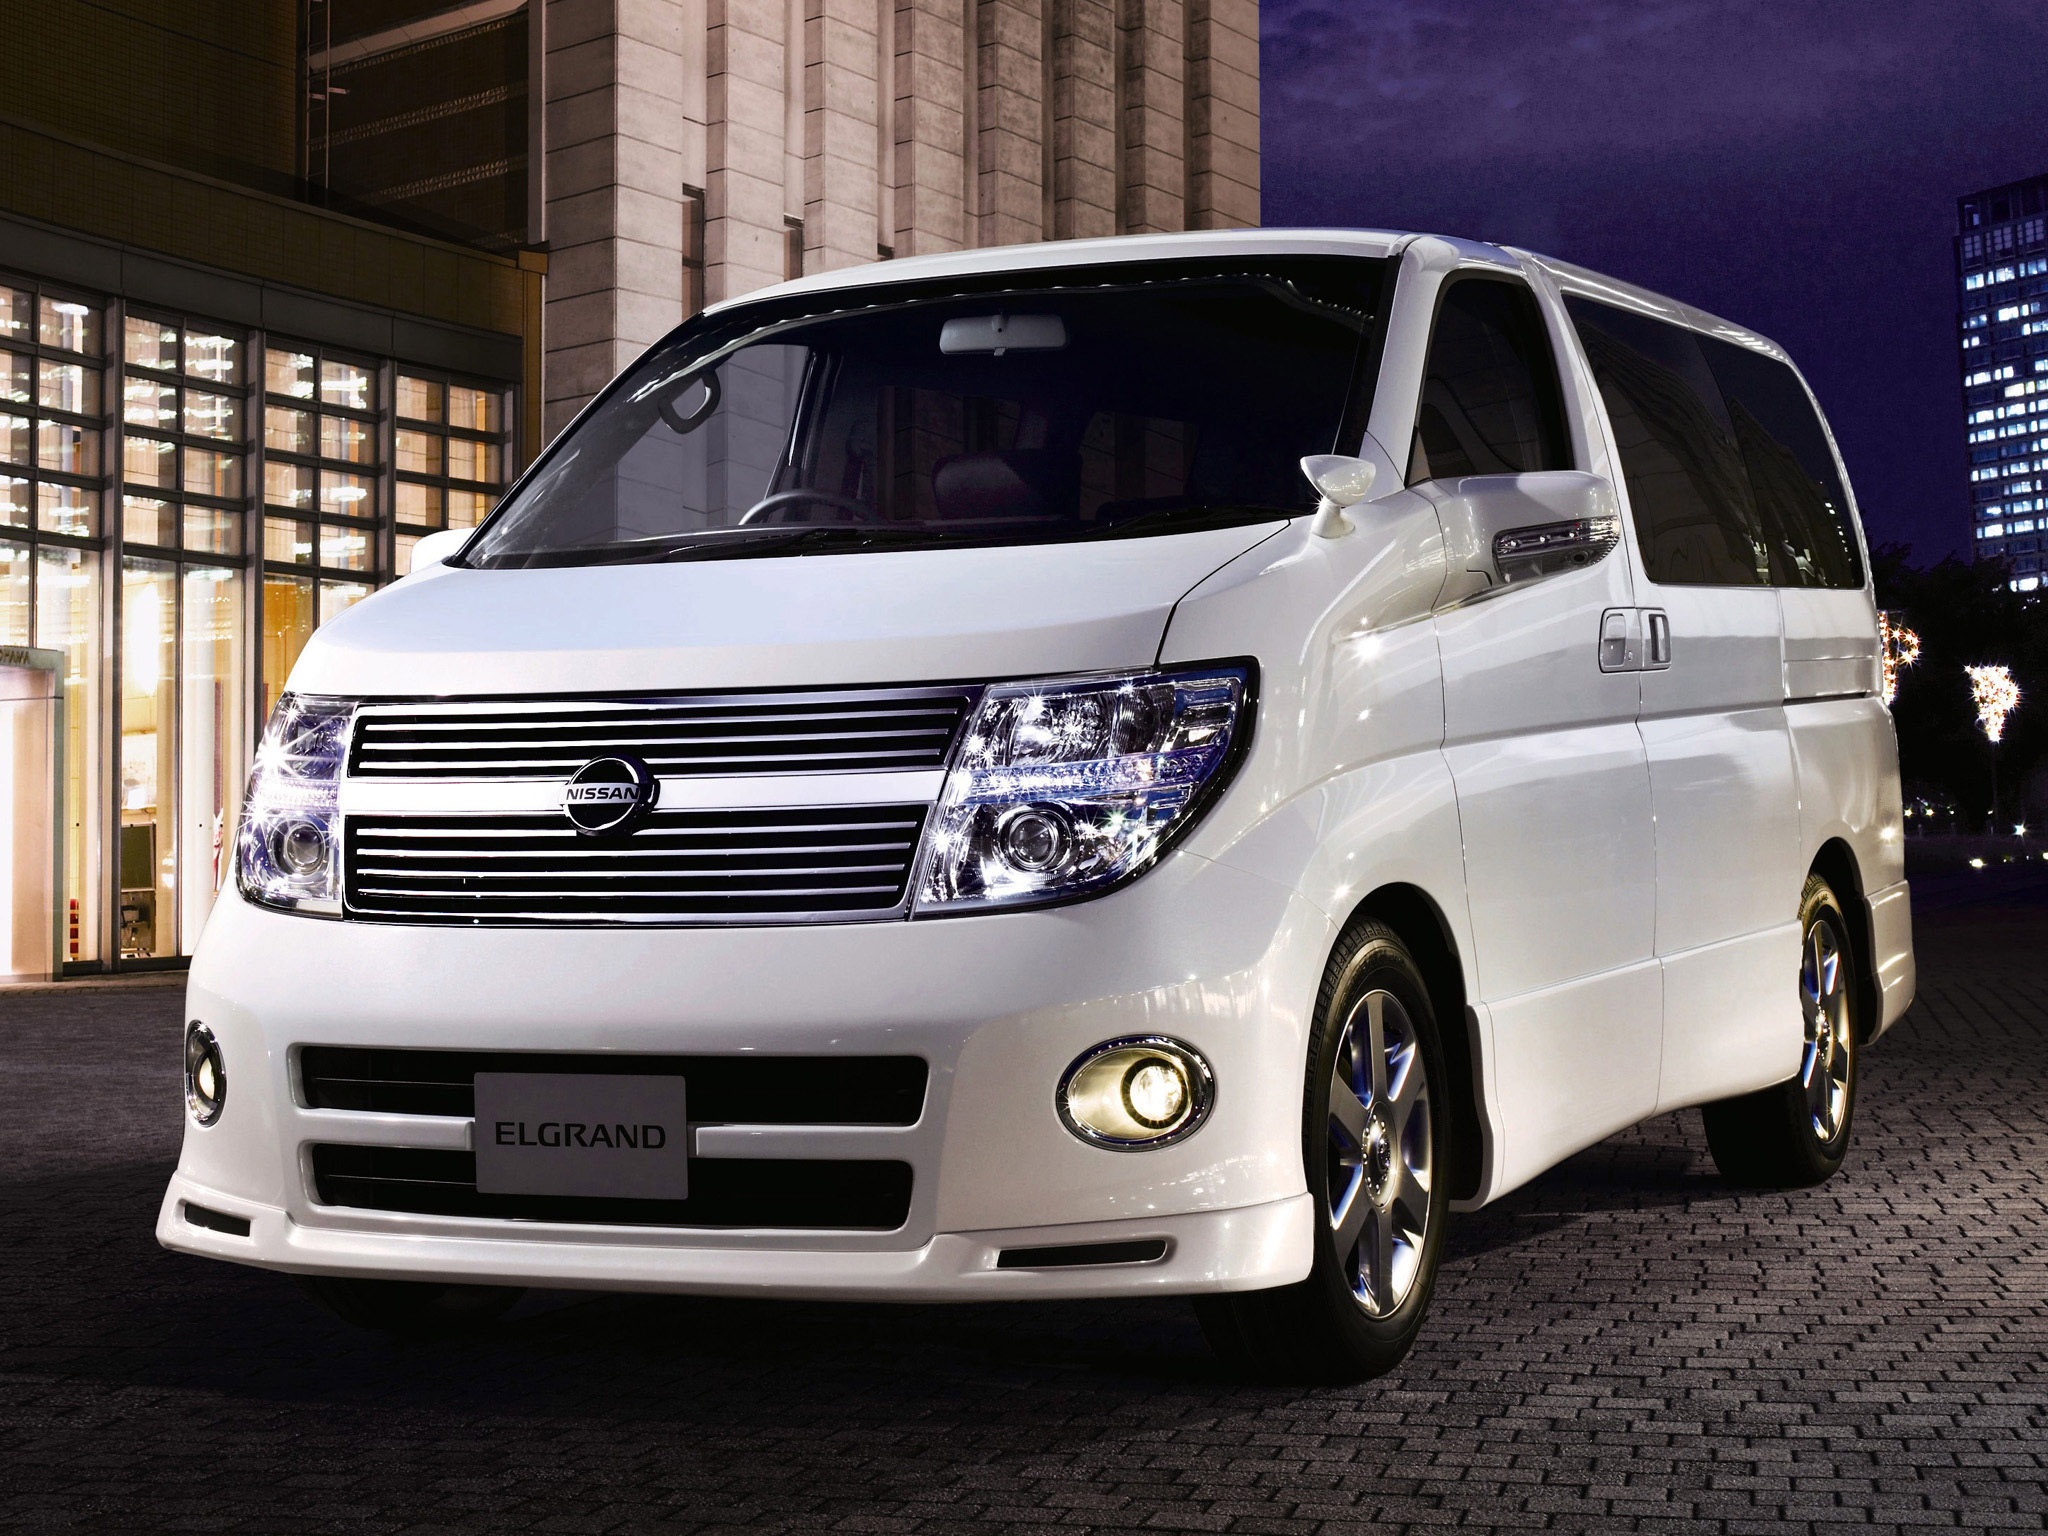 nissan elgrand images #11